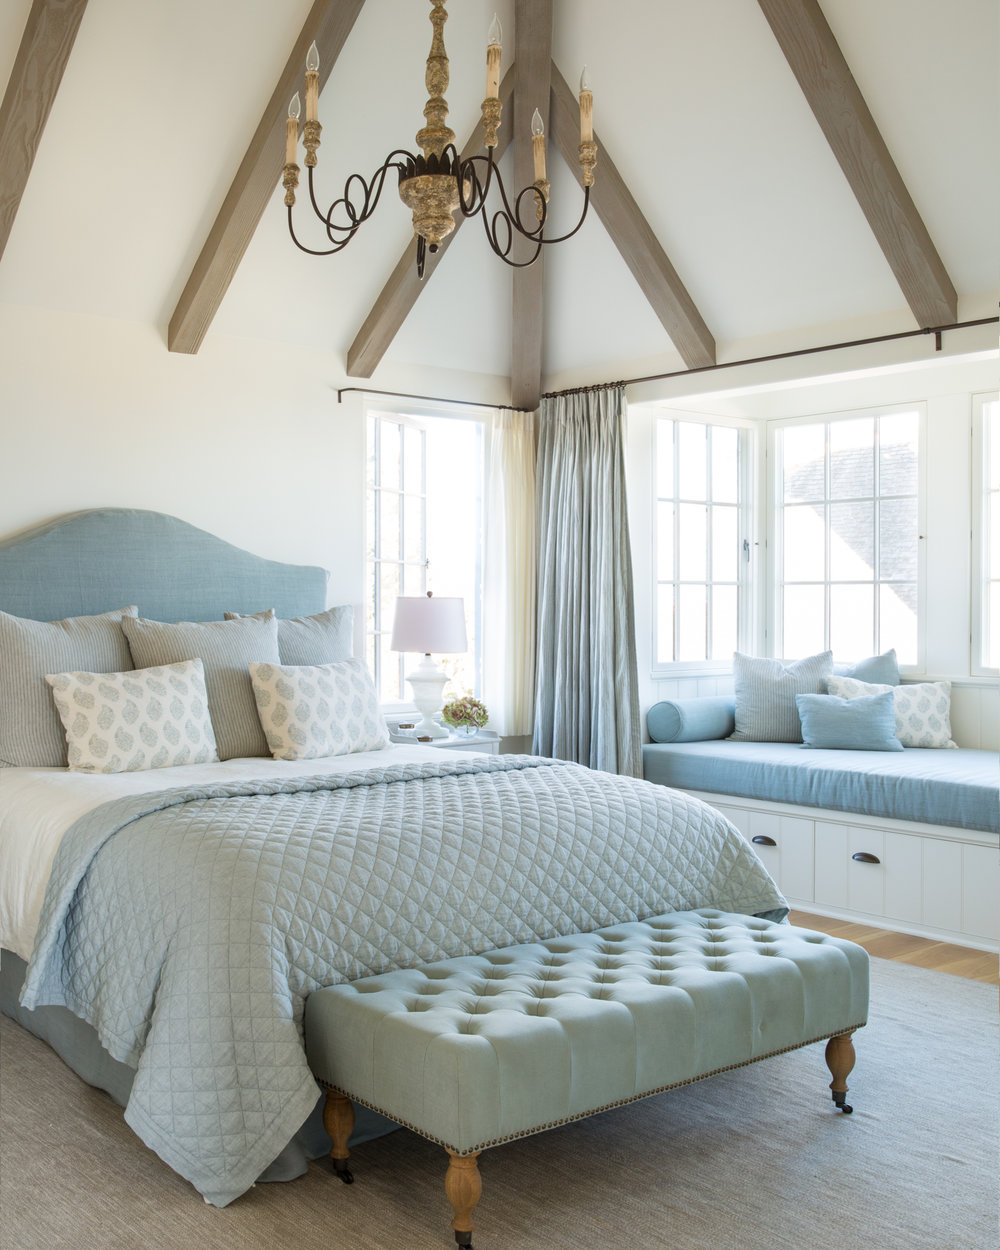 12 Design Tips to Get Modern French Country Style Without ...